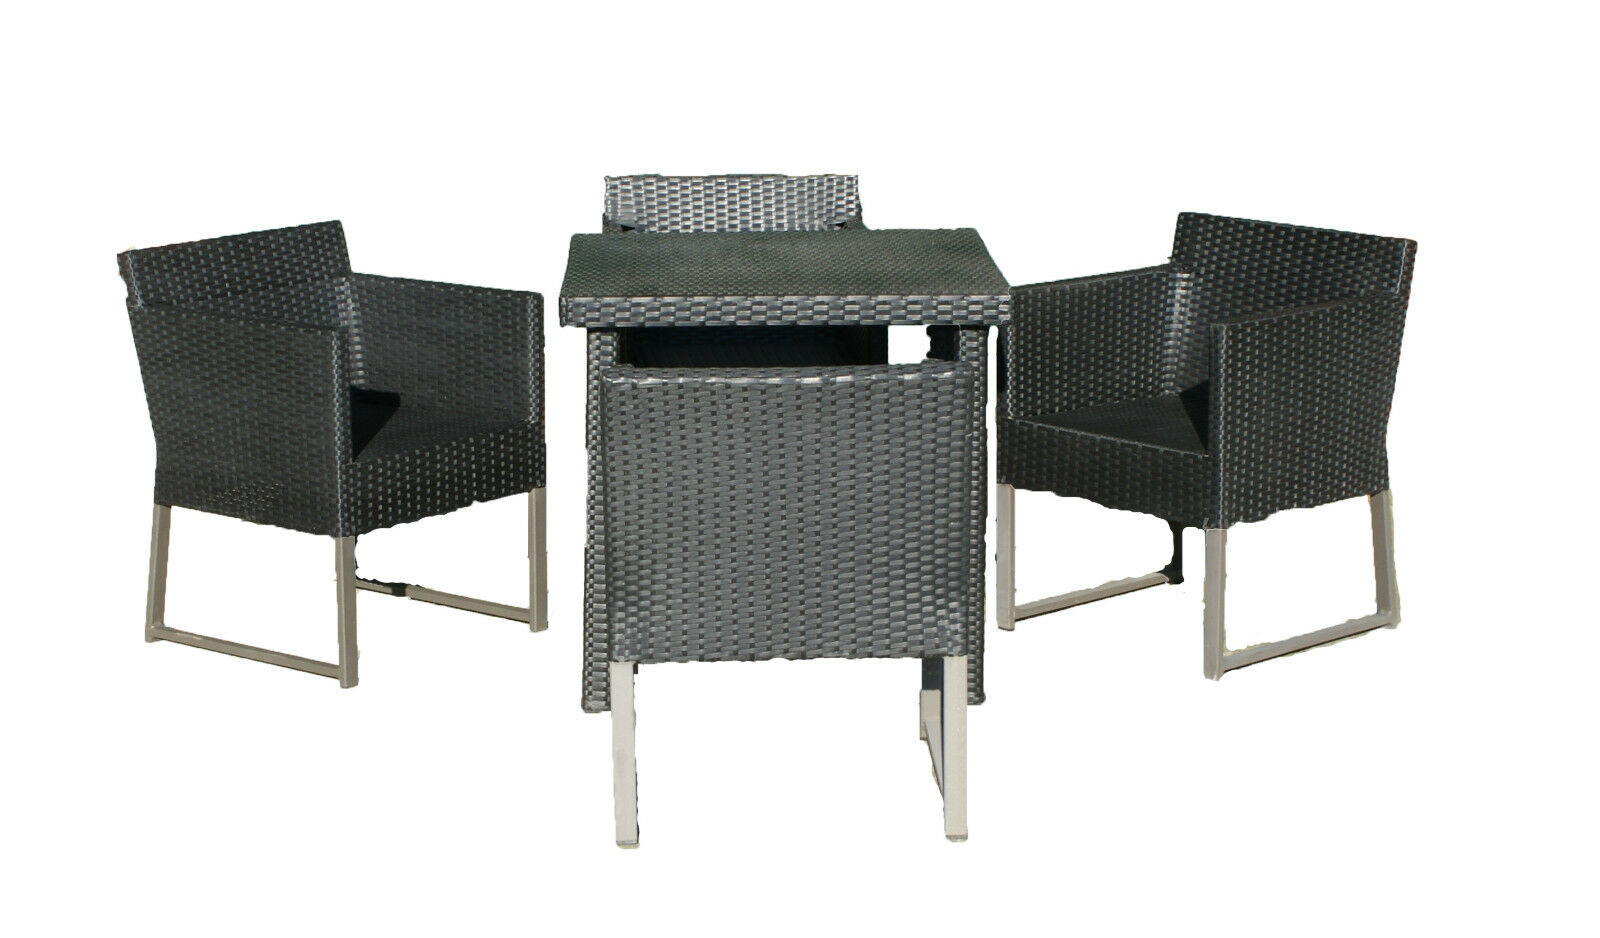 poly rattan set garnitur sitzgruppe sessel alu m bel lounge garten 77 x 77 cm eur 63 99. Black Bedroom Furniture Sets. Home Design Ideas